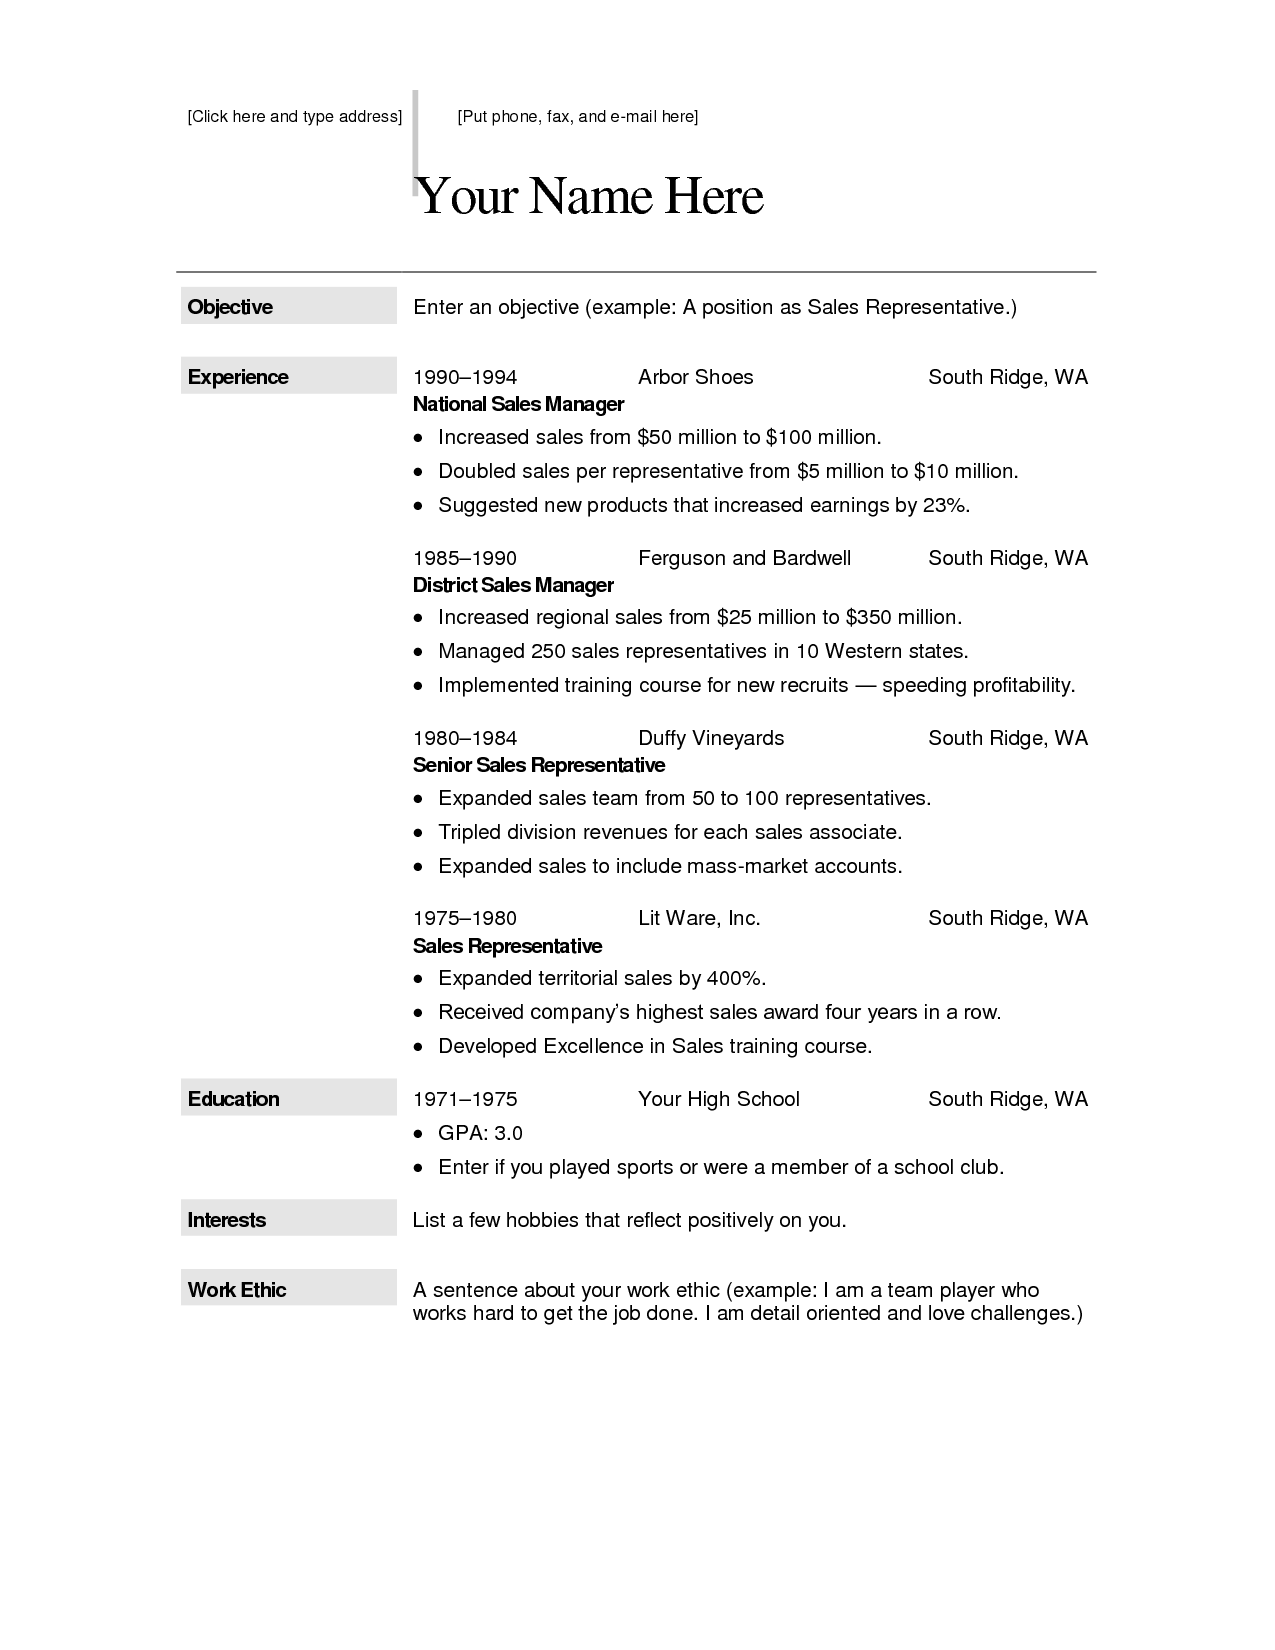 Beautiful Free Usable Resume Templates Free Resume Templates, Free Blank Resume Free  Printable Resume Format Free Printable For, Resume Examples Free Usable  Resume ... In Resume Examples Free Download